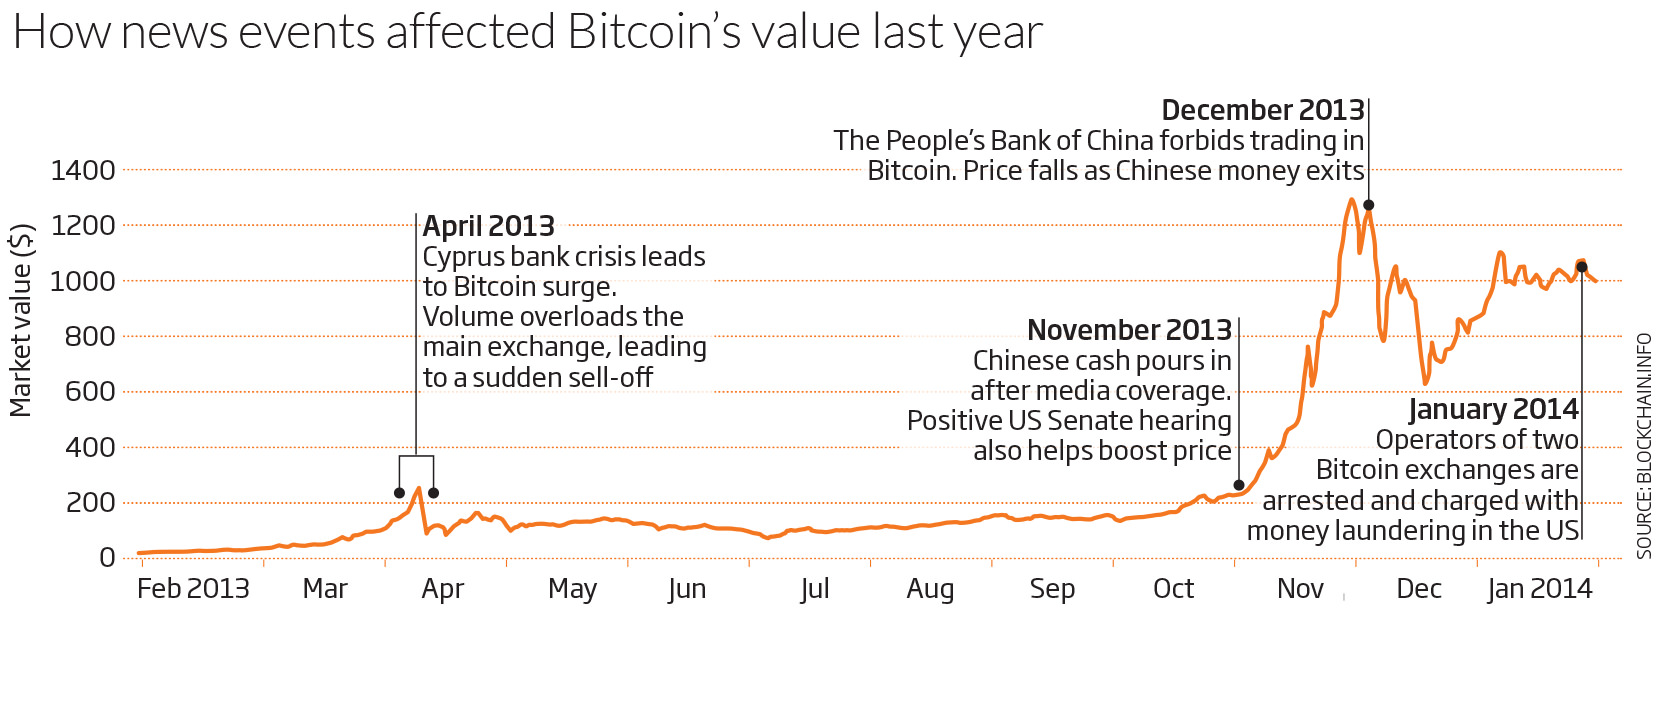 How news events affected Bitcoin's value last year